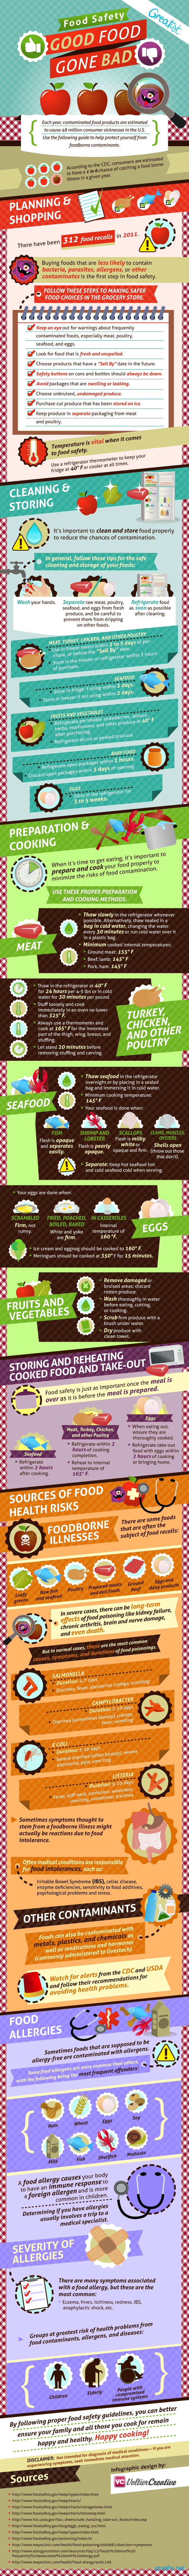 food health and safety facts